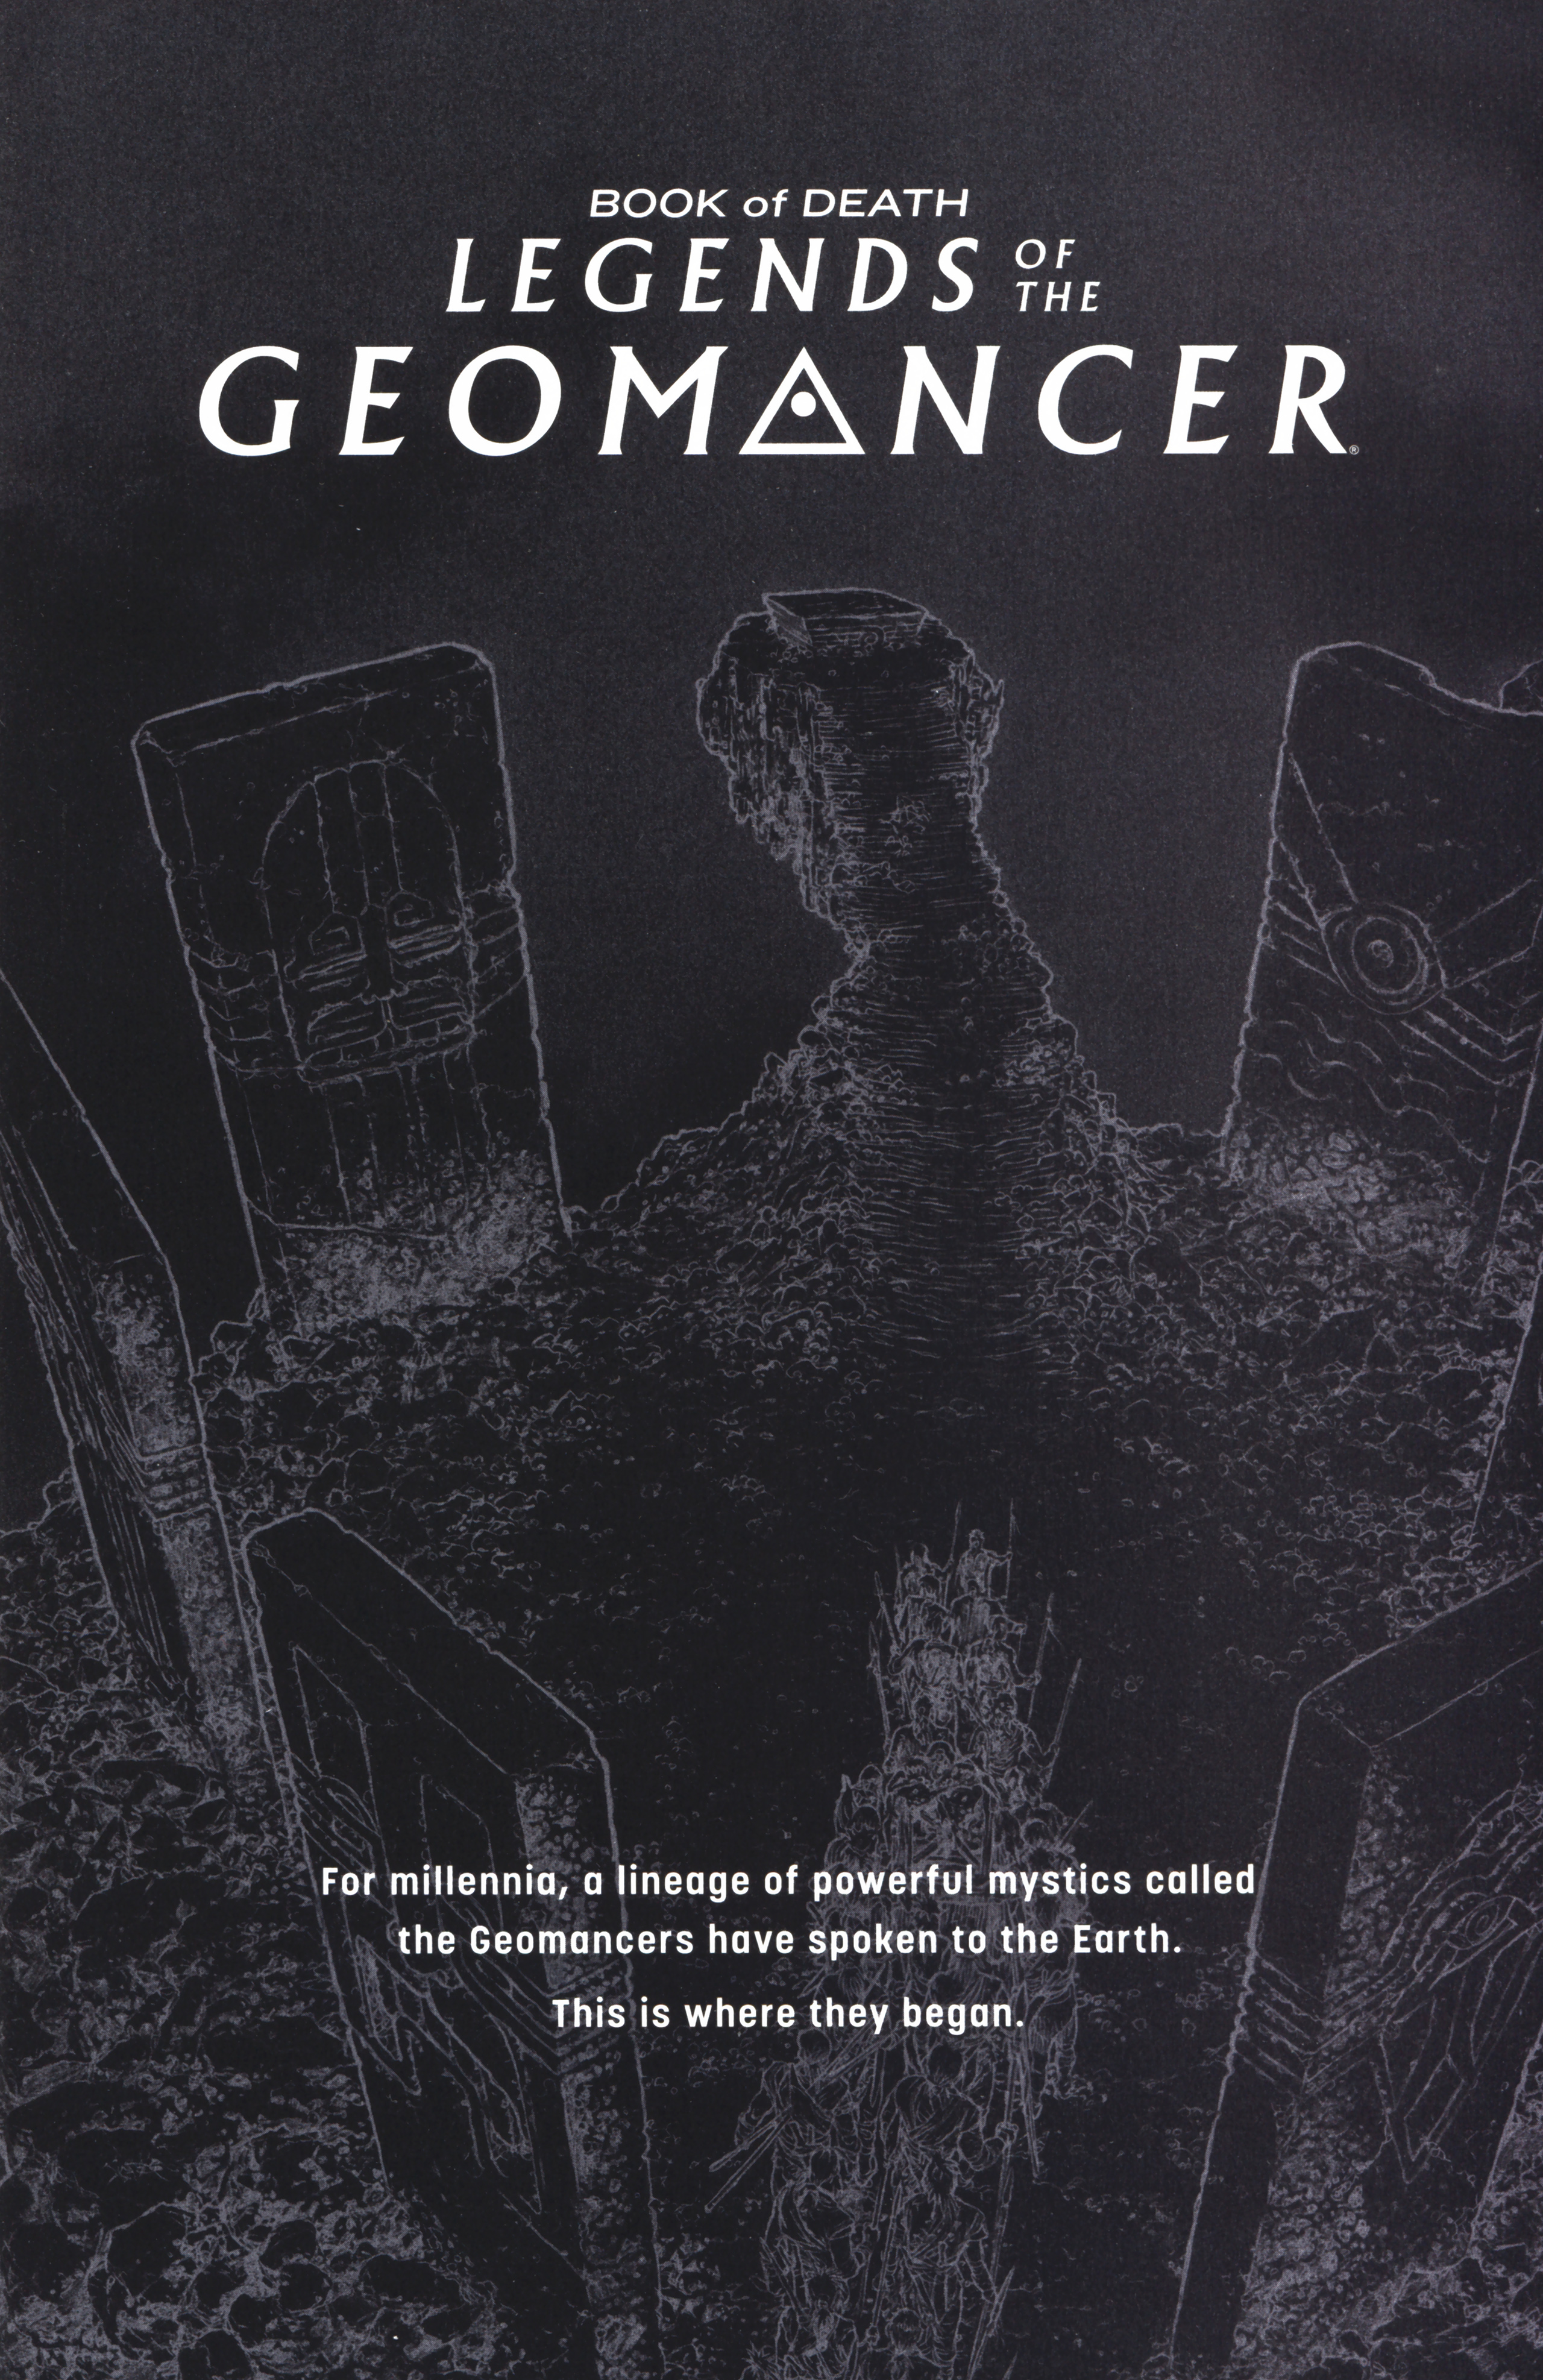 Read online Book of Death: Legends of the Geomancer comic -  Issue #1 - 3